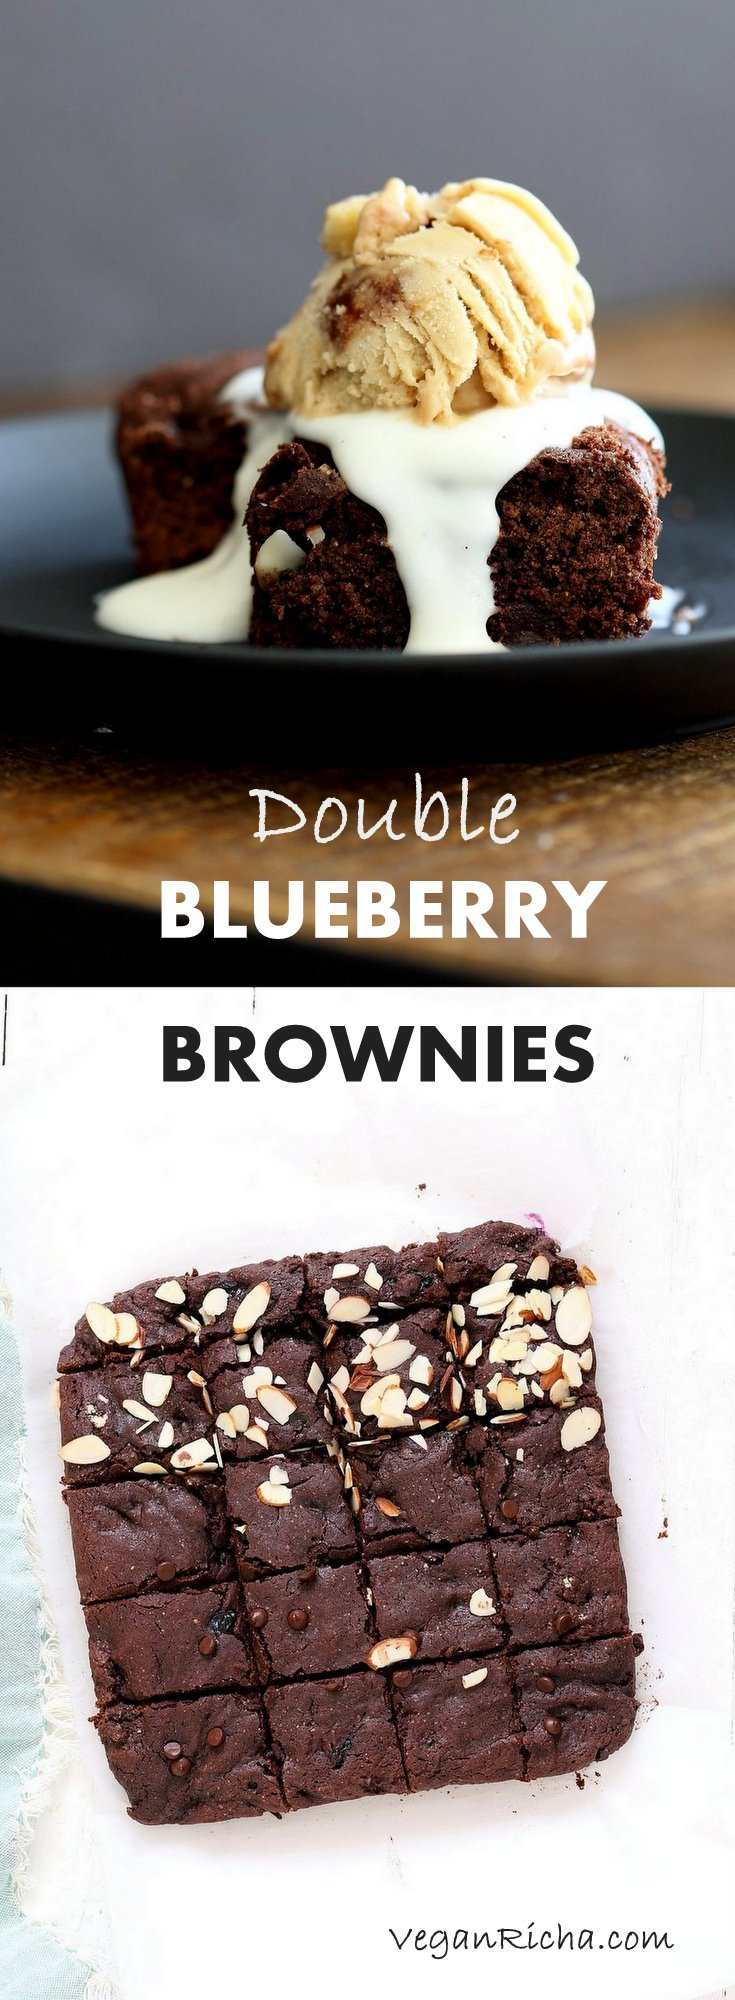 Double Blueberry Brownies. Summer Dark Chocolate Brownies with blueberries and almonds. Blueberries cooked to a compote in the wet and blueberries added with chocolate chips in the batter. #Vegan #Brownie #Recipe. Easily made #Glutenfree | VeganRicha.com